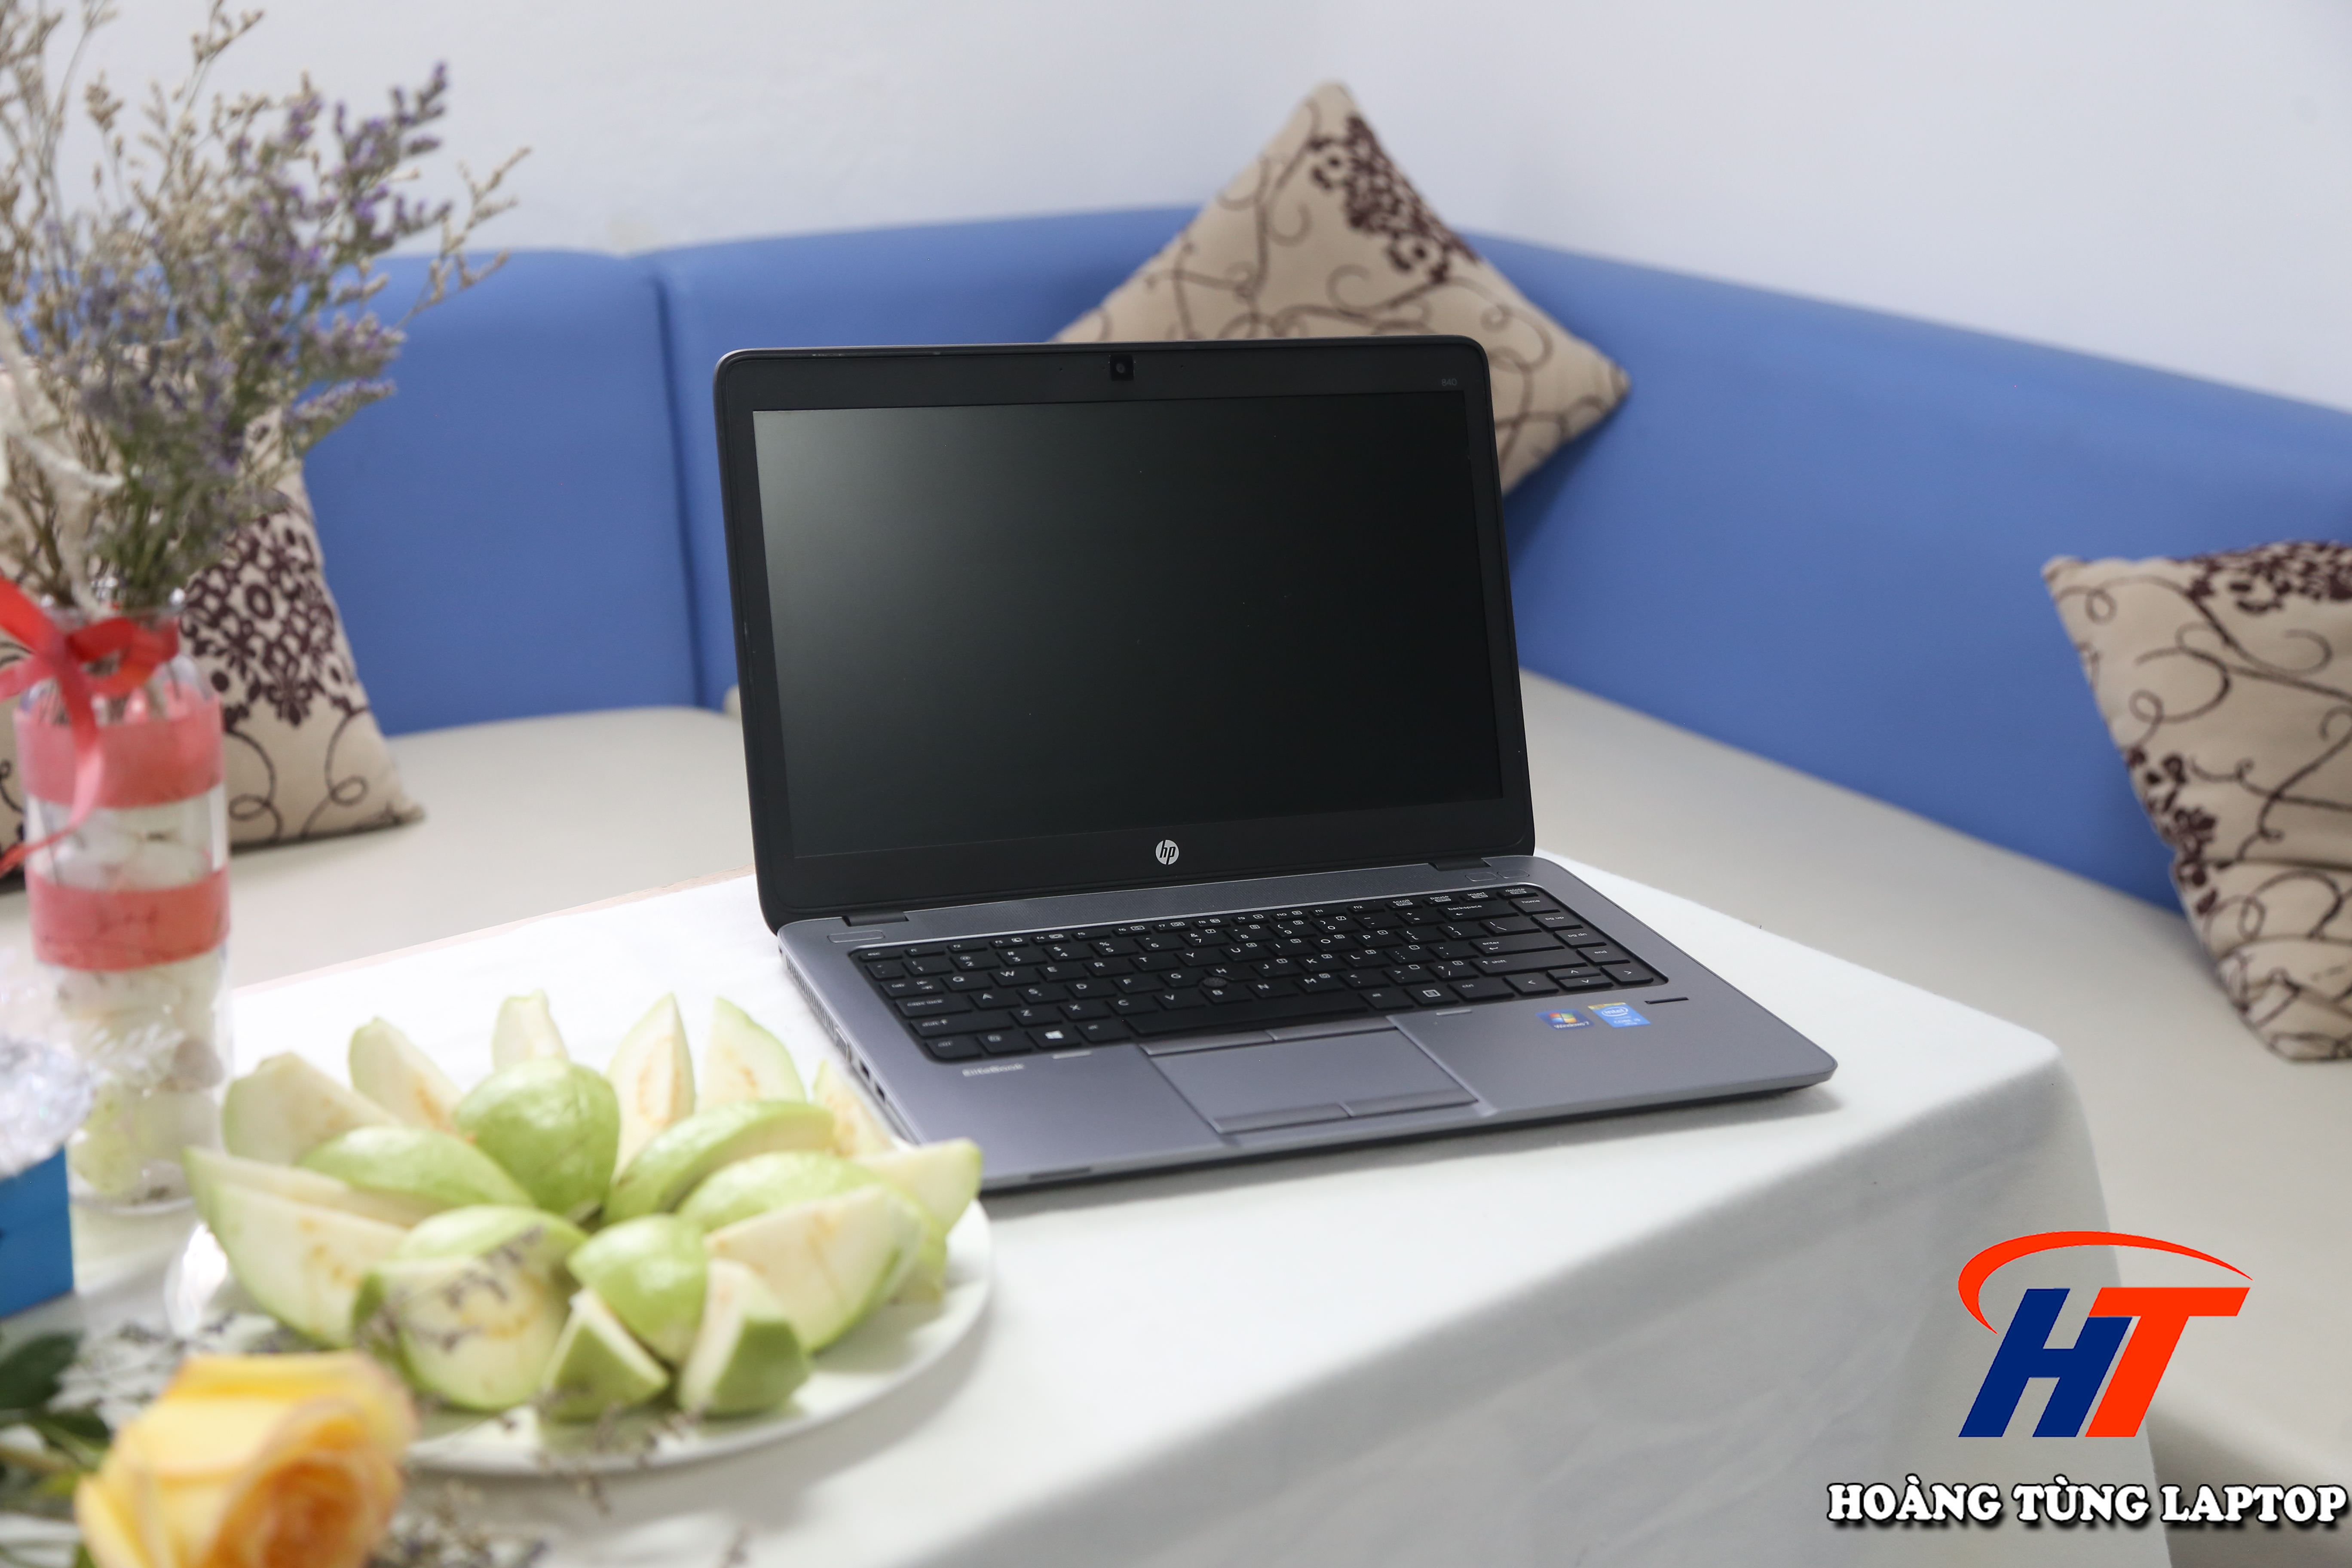 Laptop cũ HP Elitebook 840 G1 2